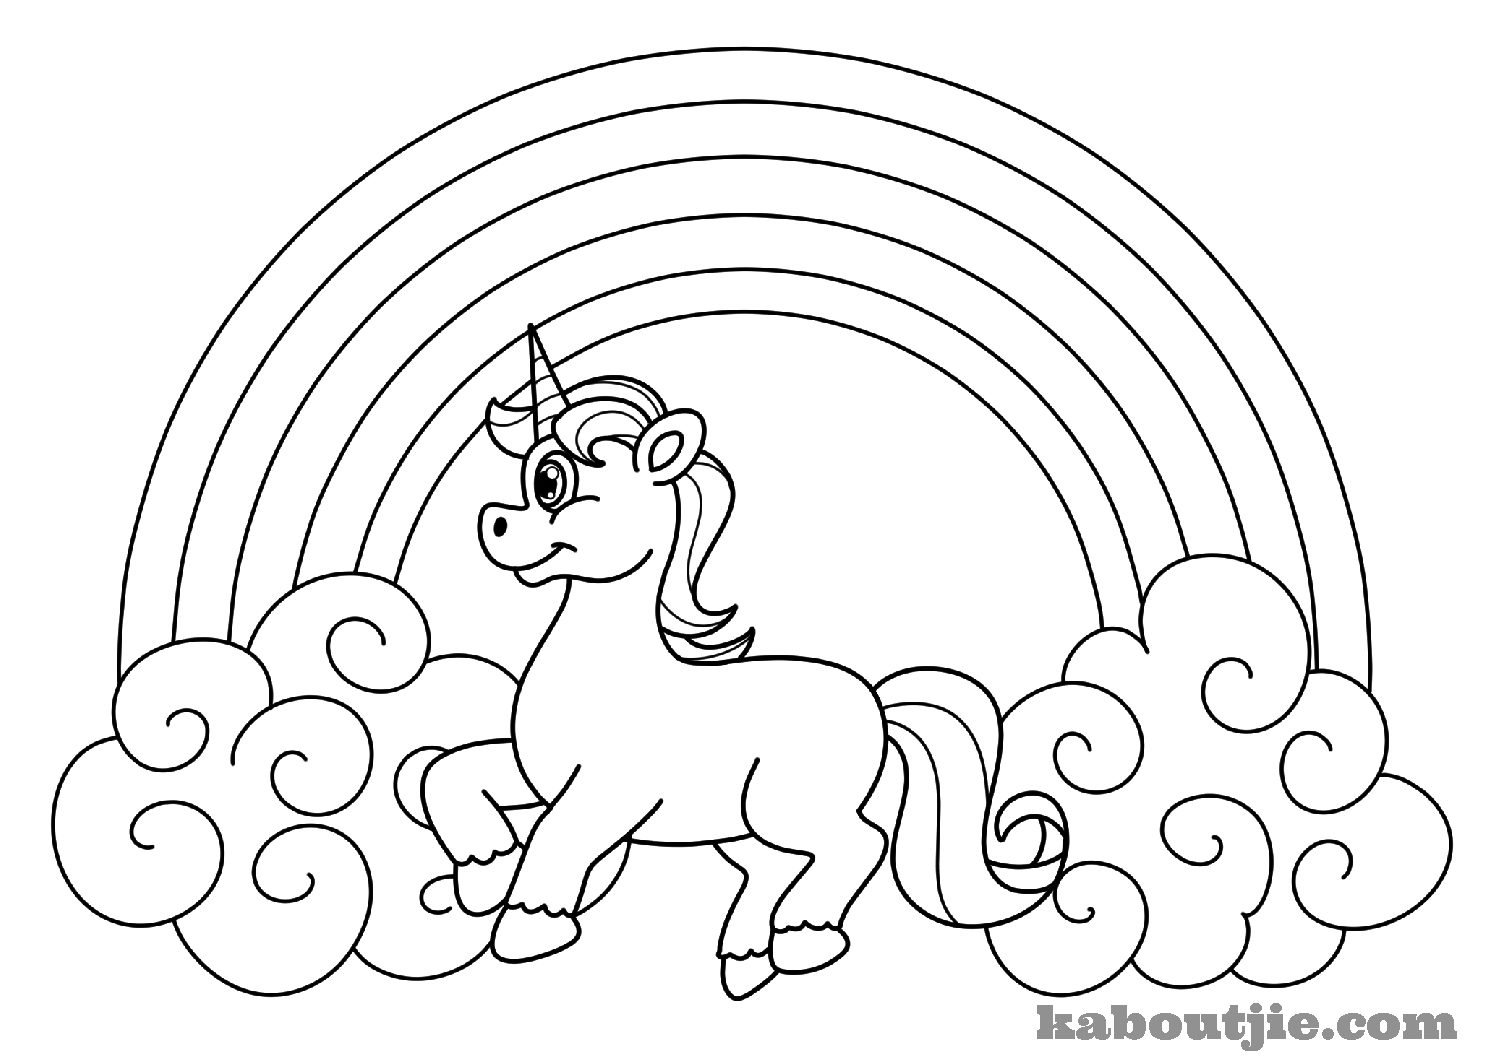 Free-Printable-Unicorn-Coloring-Page | Kaboutjie - Free Printable Unicorn Coloring Pages